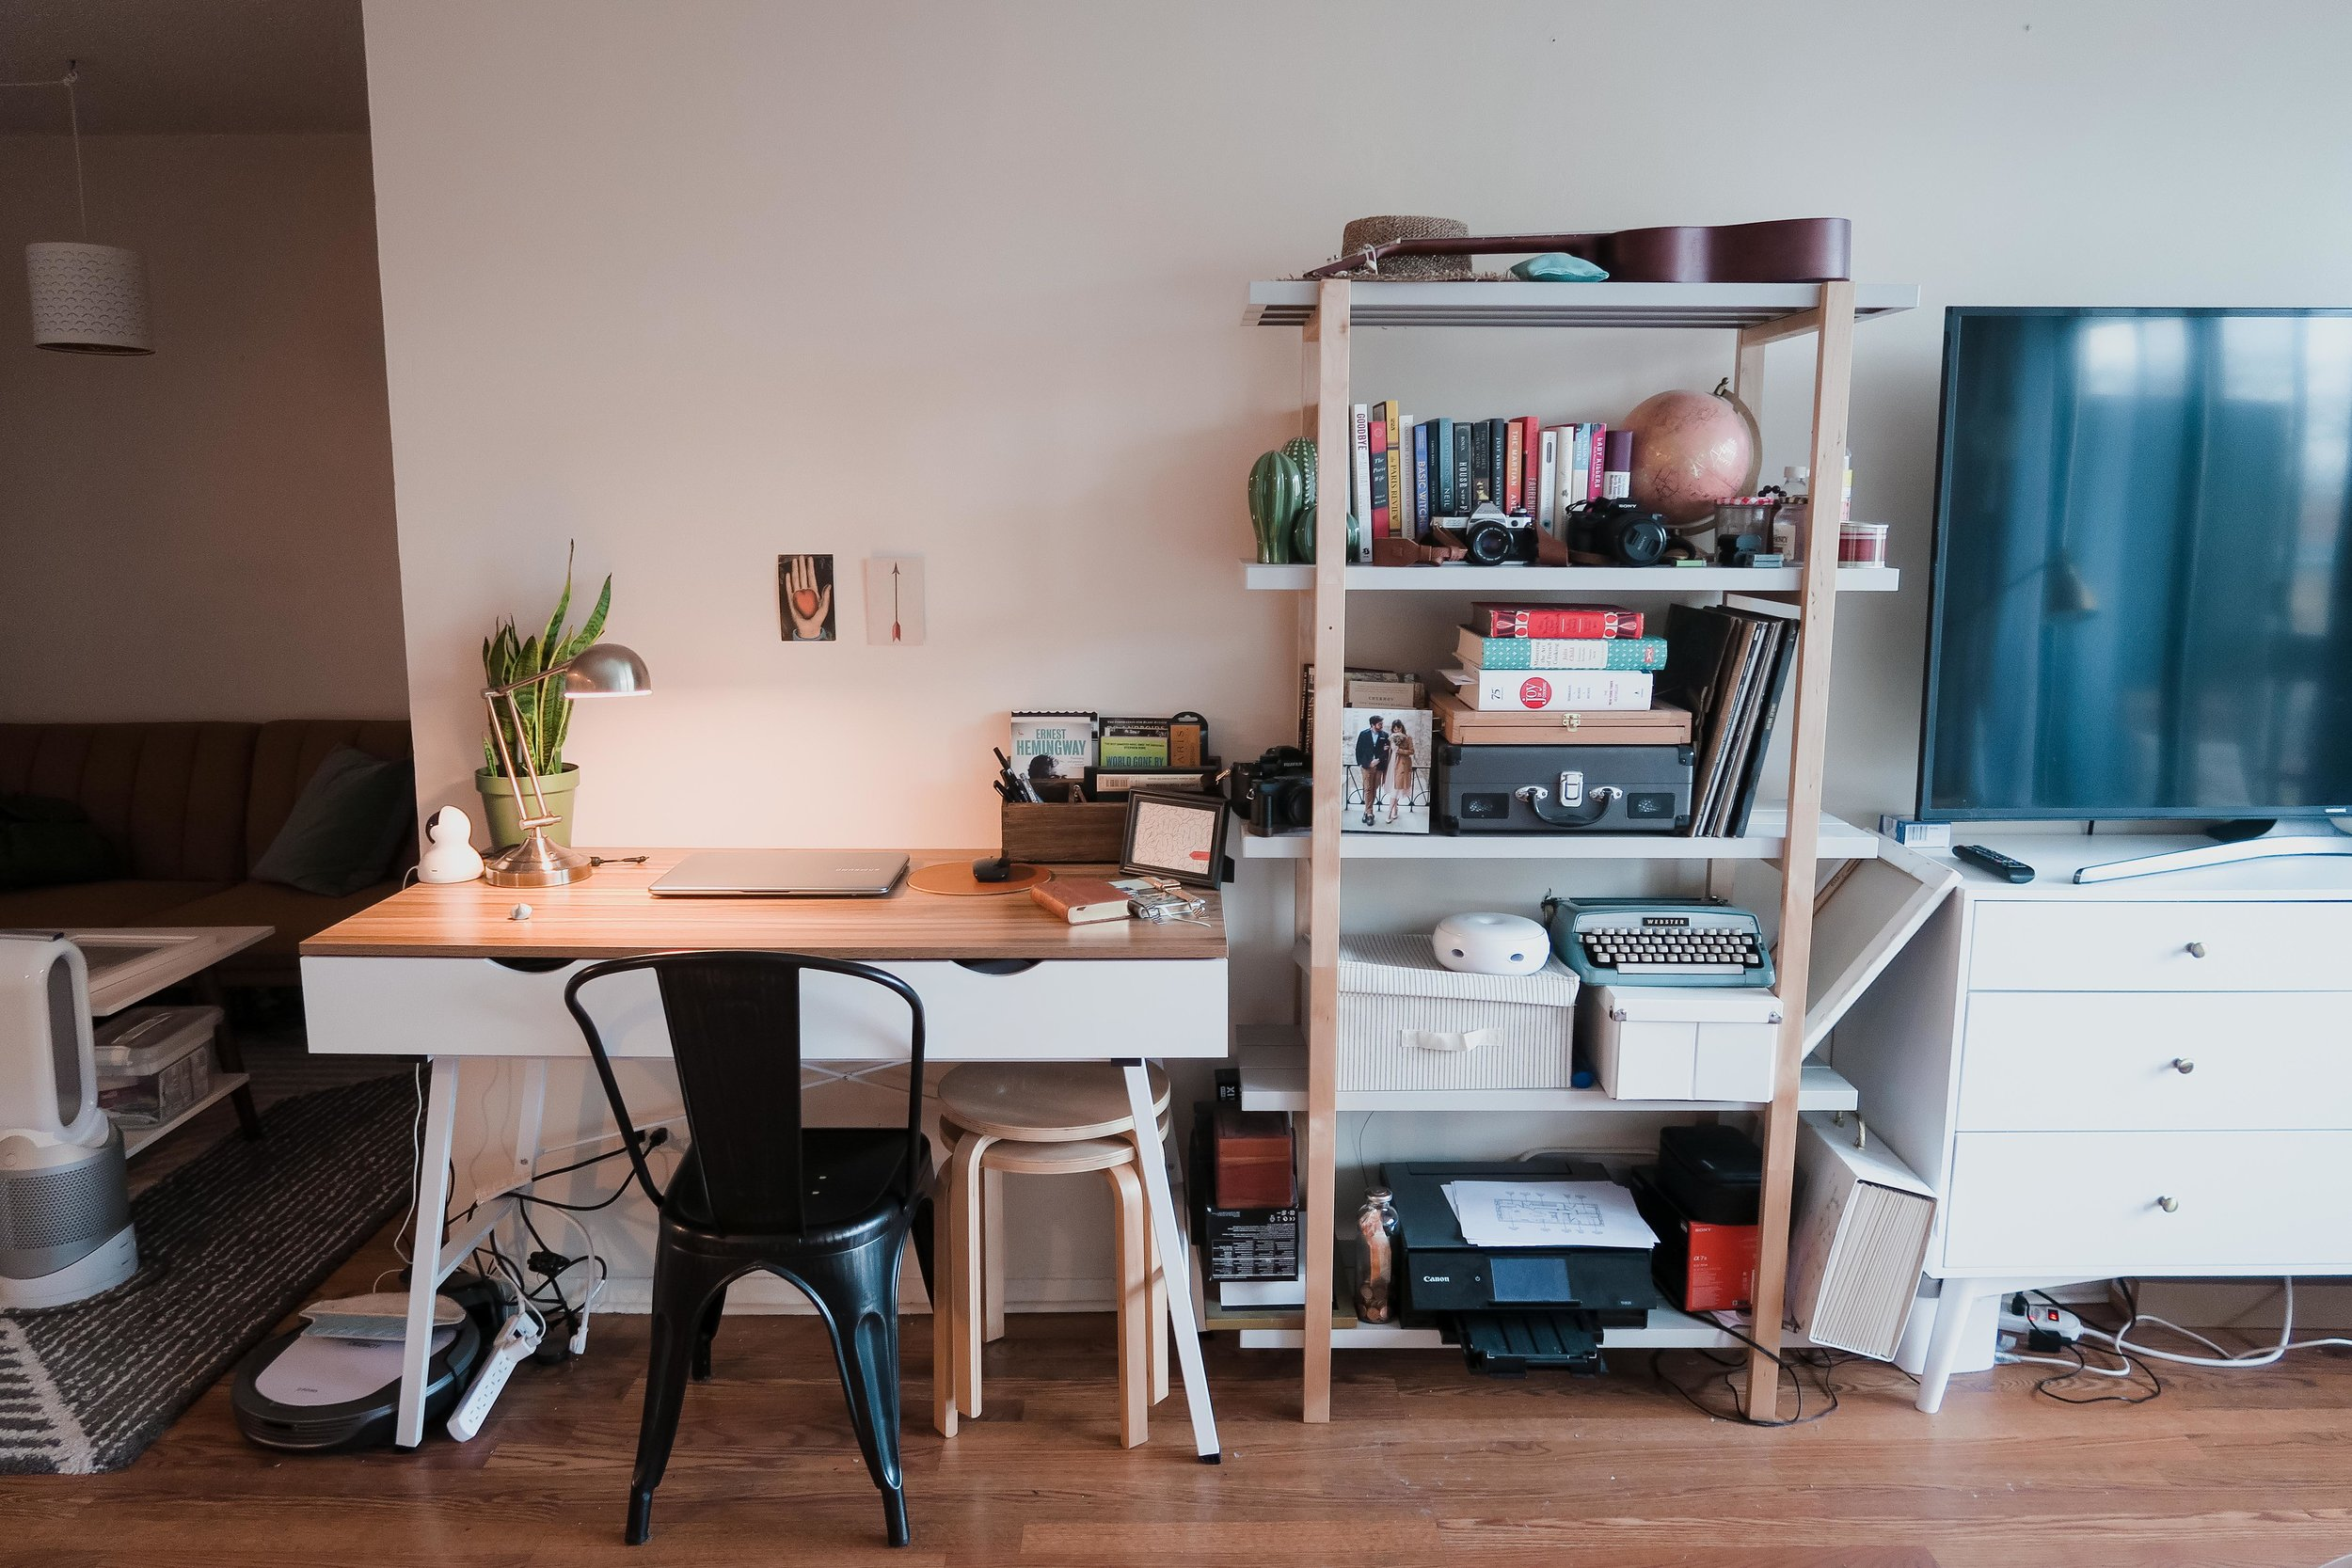 gab's work space - where he spent most of his time on his laptop, either on social media or writing his scripts.